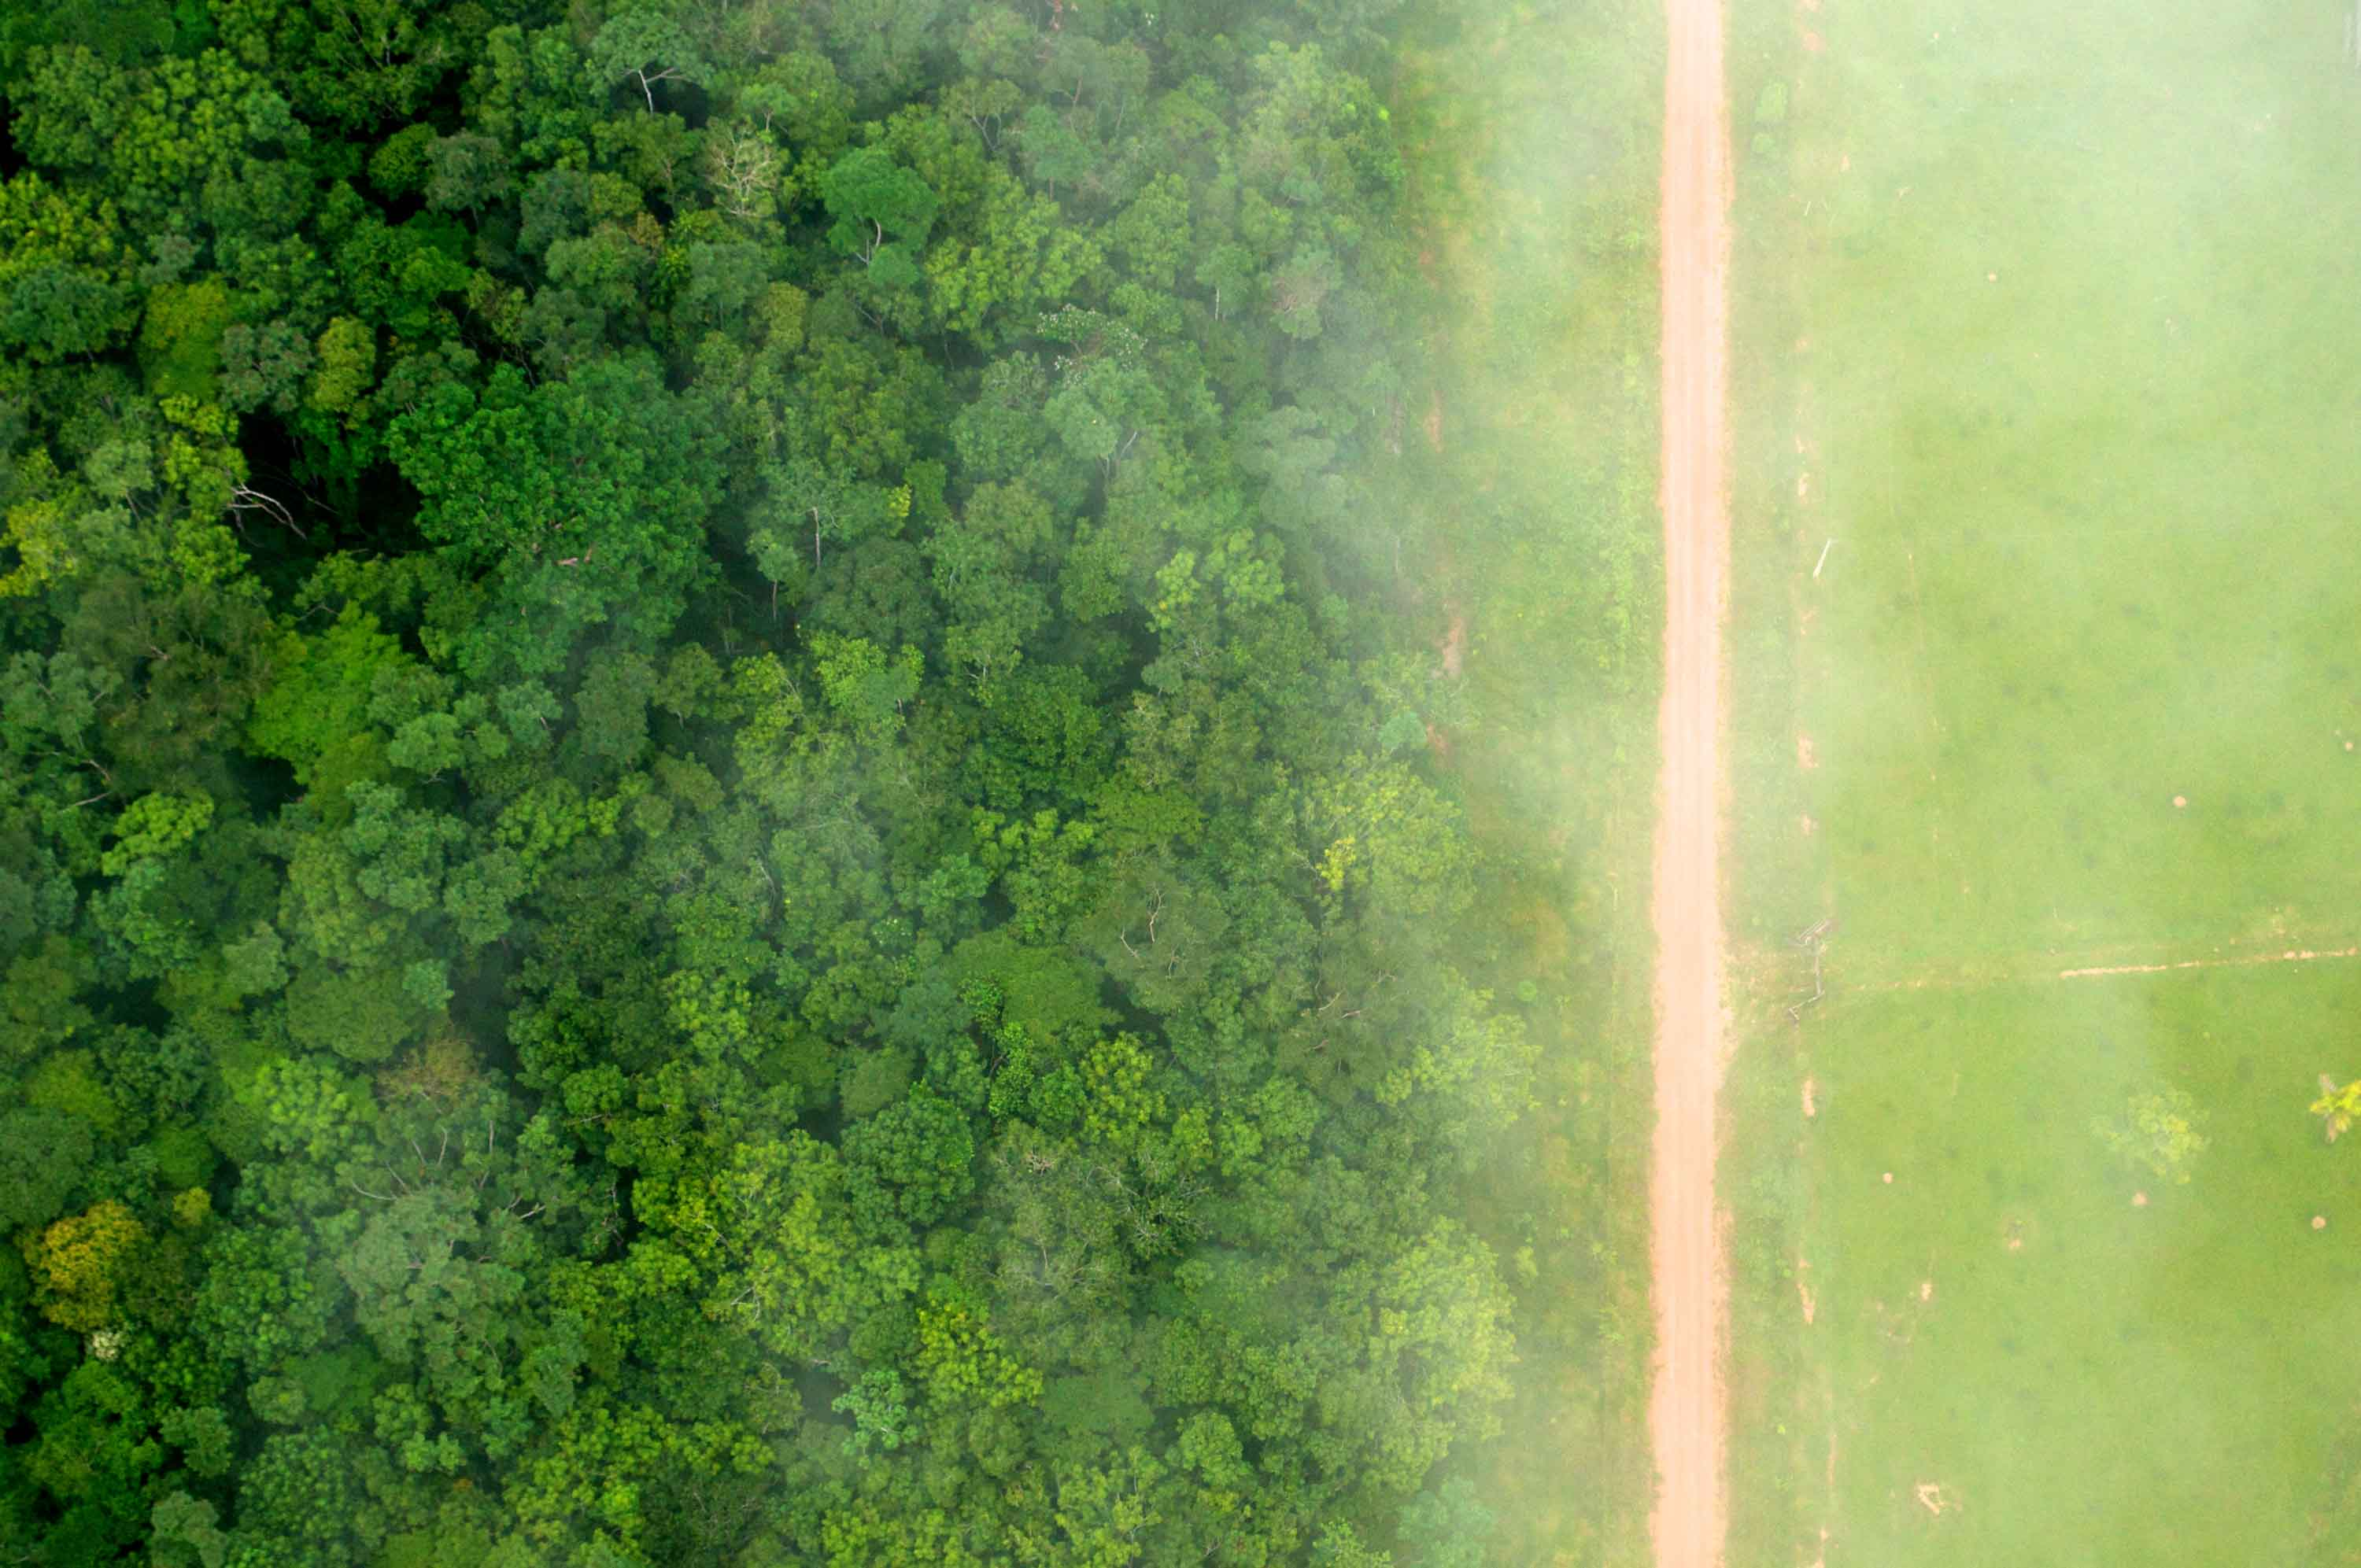 A bird's eye view of the stark contrast between the forest and agricultural landscapes near Rio Branco, Acre, Brazil. Photo by Kate Evans for Center for International Forestry Research (CIFOR), licensed under CC BY-NC 2.0.